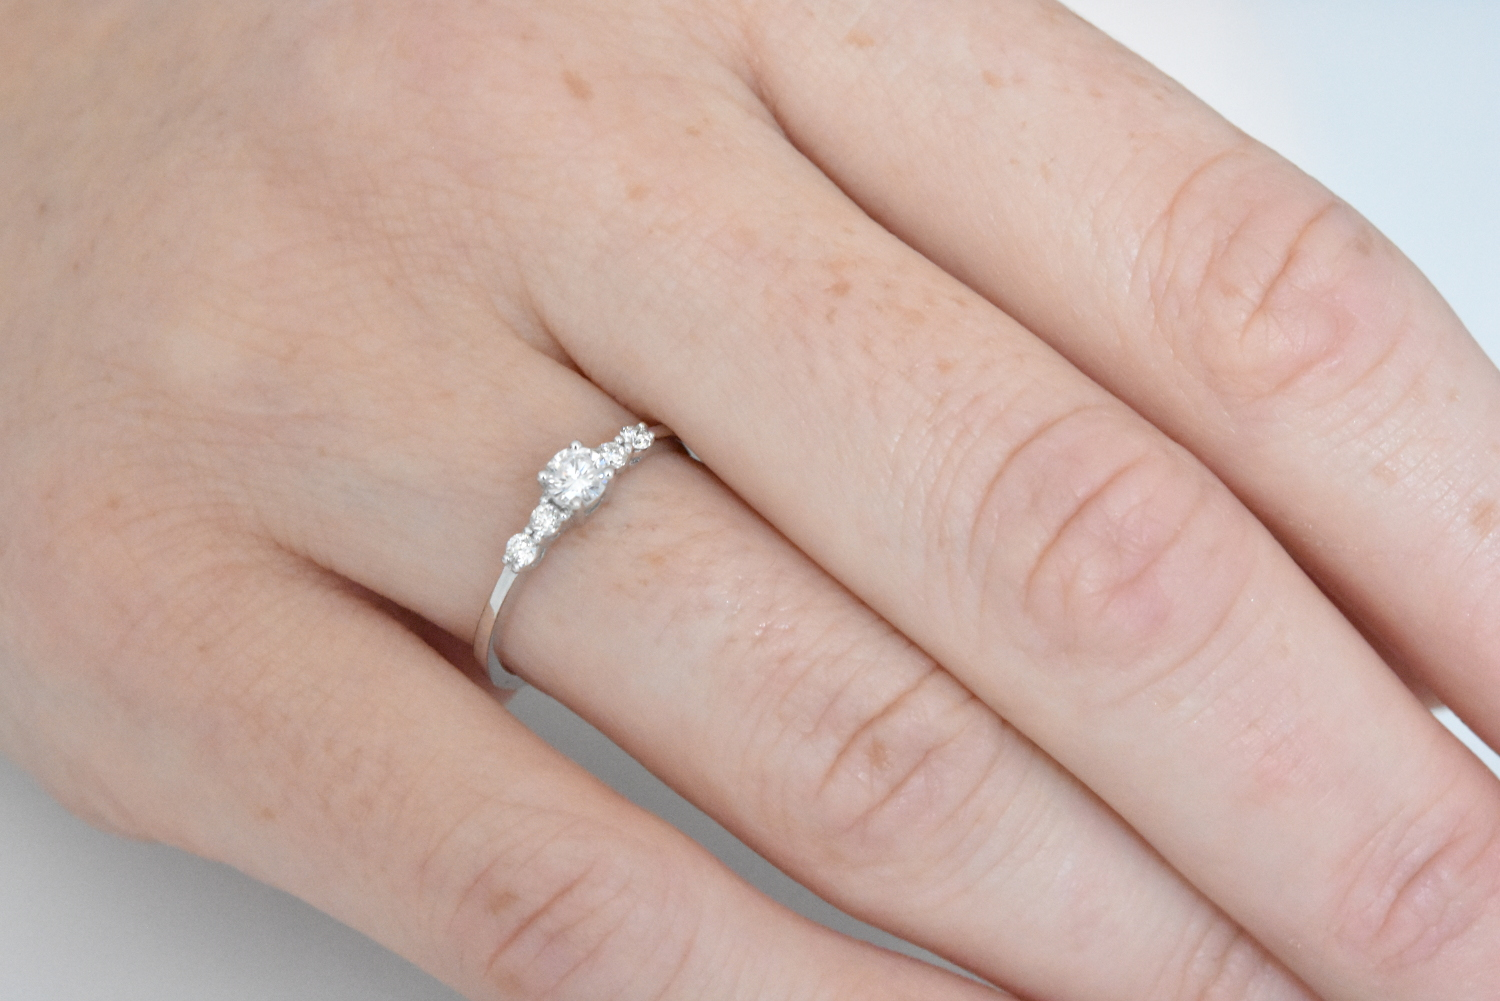 Delicate Diamond Engagement Ring - nature shiny